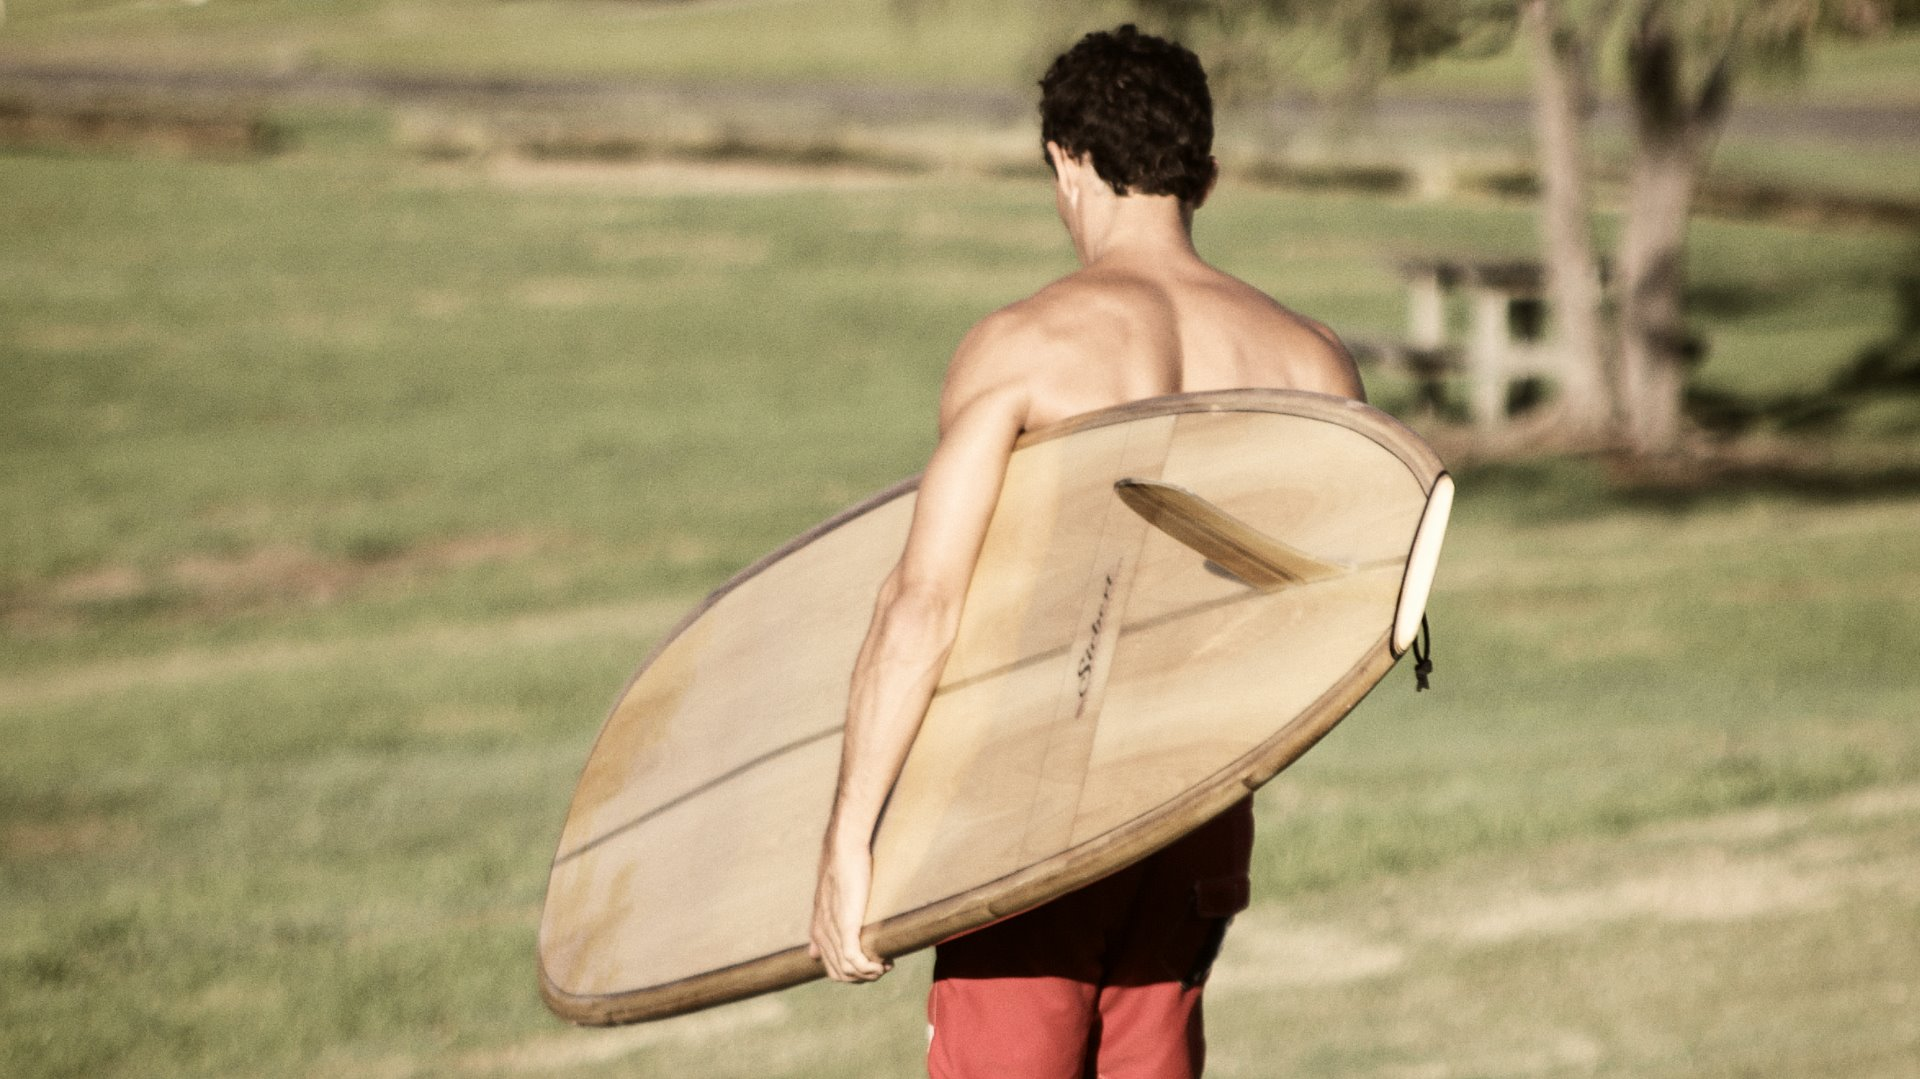 Felipe-longboard-siebert-surfboards-10